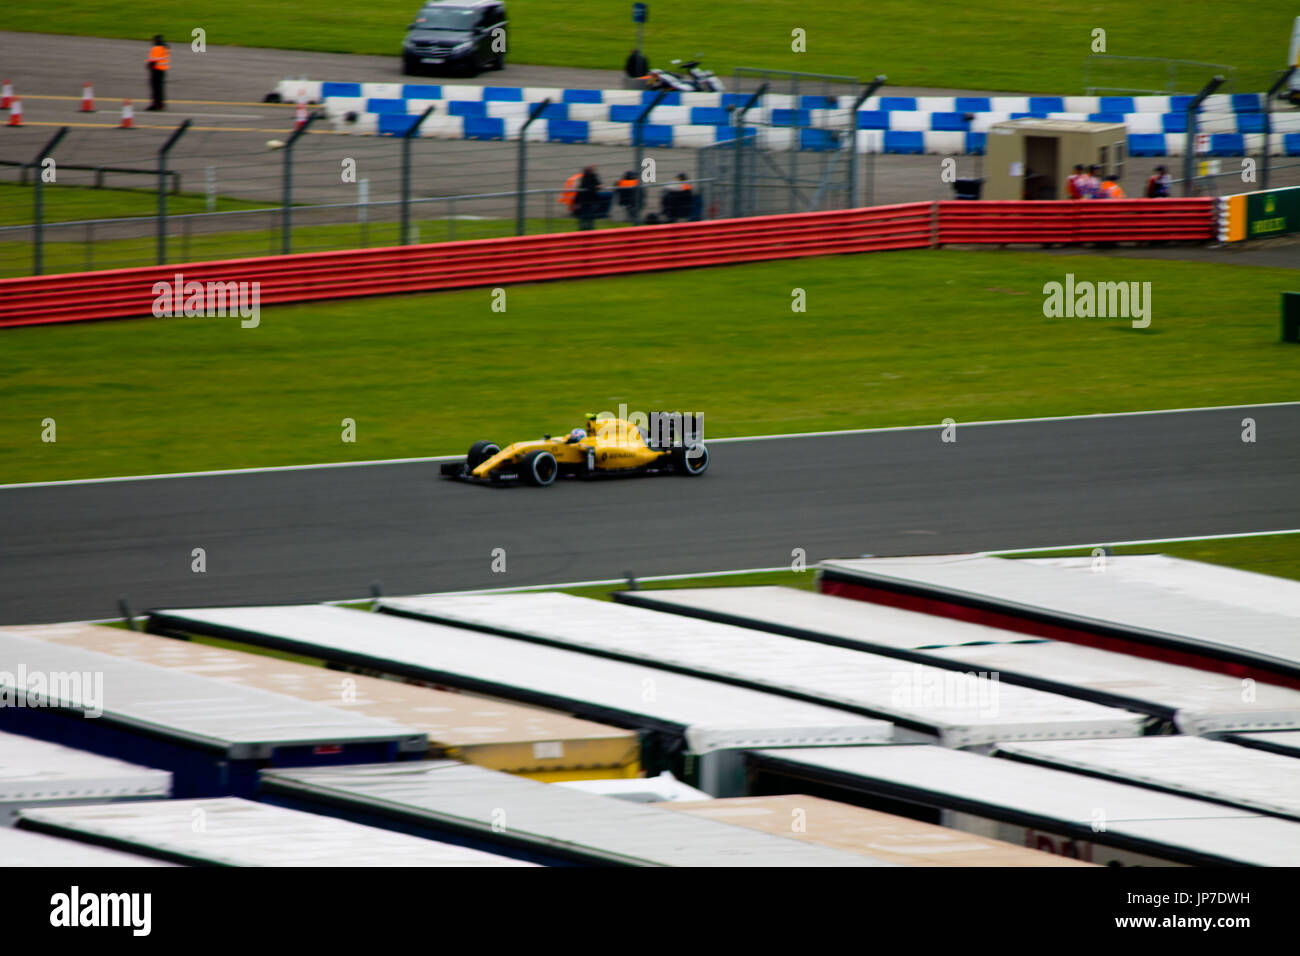 Lorry roof stock photos lorry roof stock images alamy - Hangar straight silverstone ...